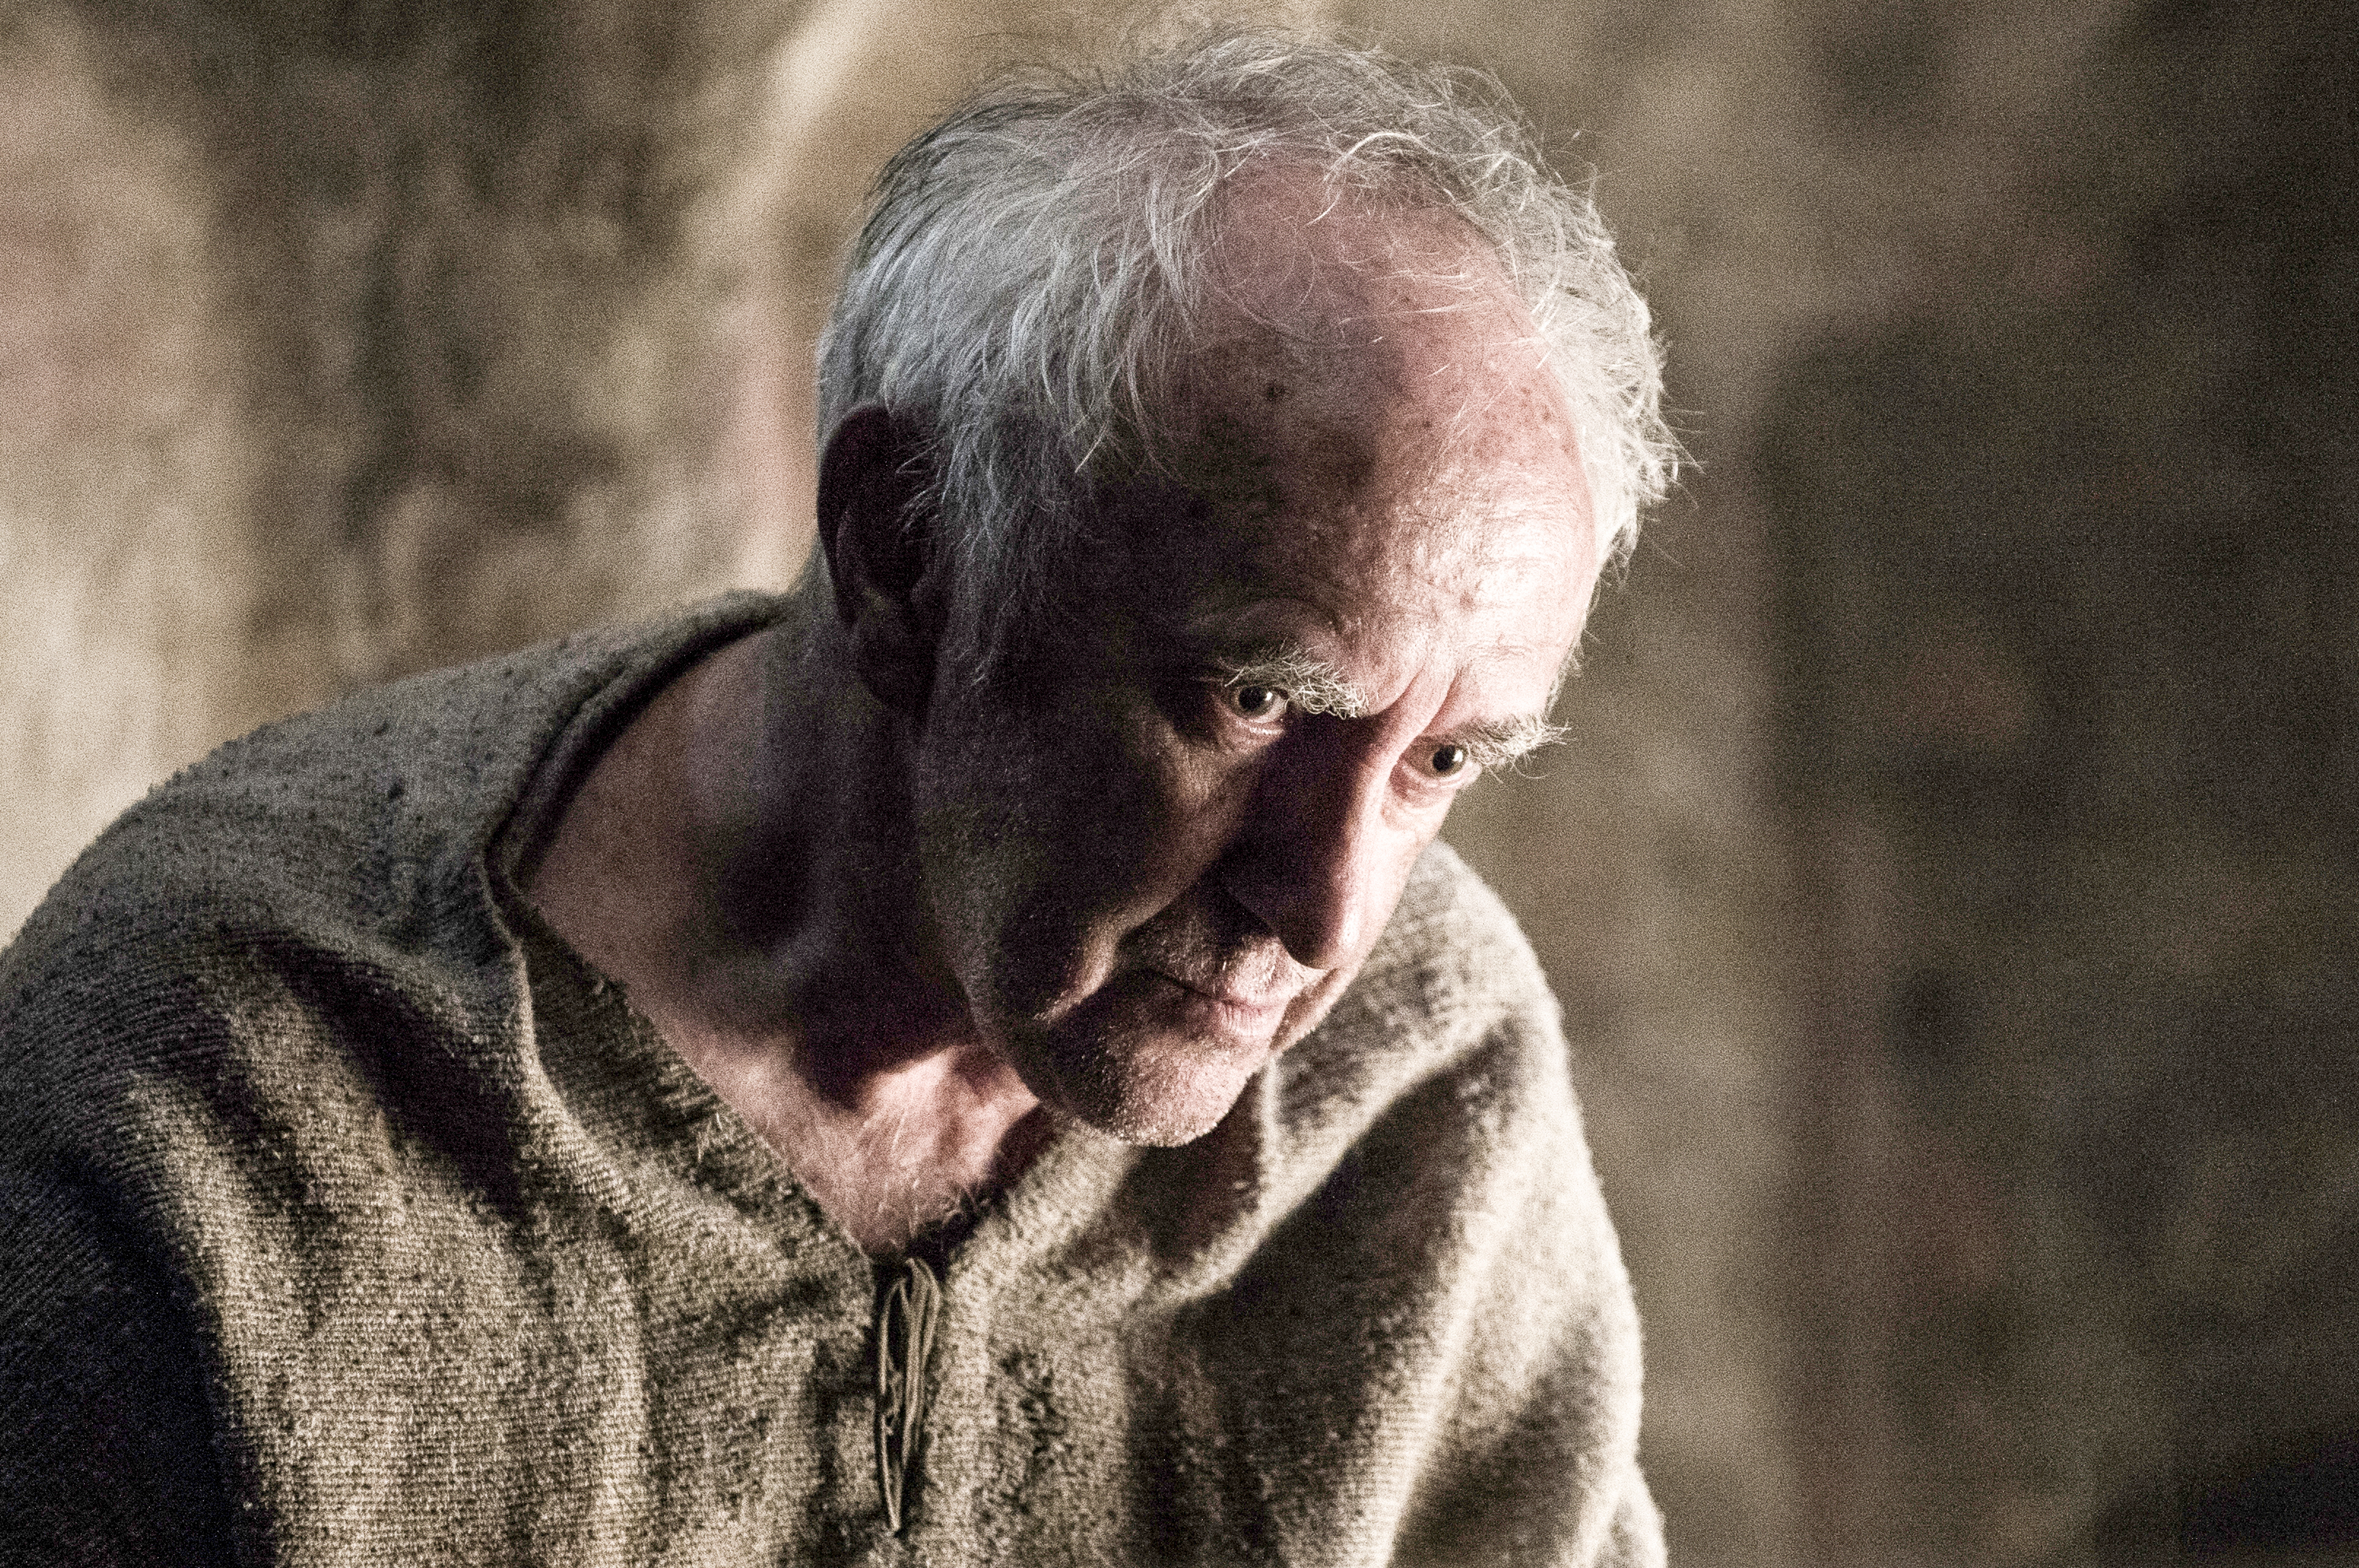 Jonathan Pryce as the High Sparrow. Photo by Helen Sloan/HBO